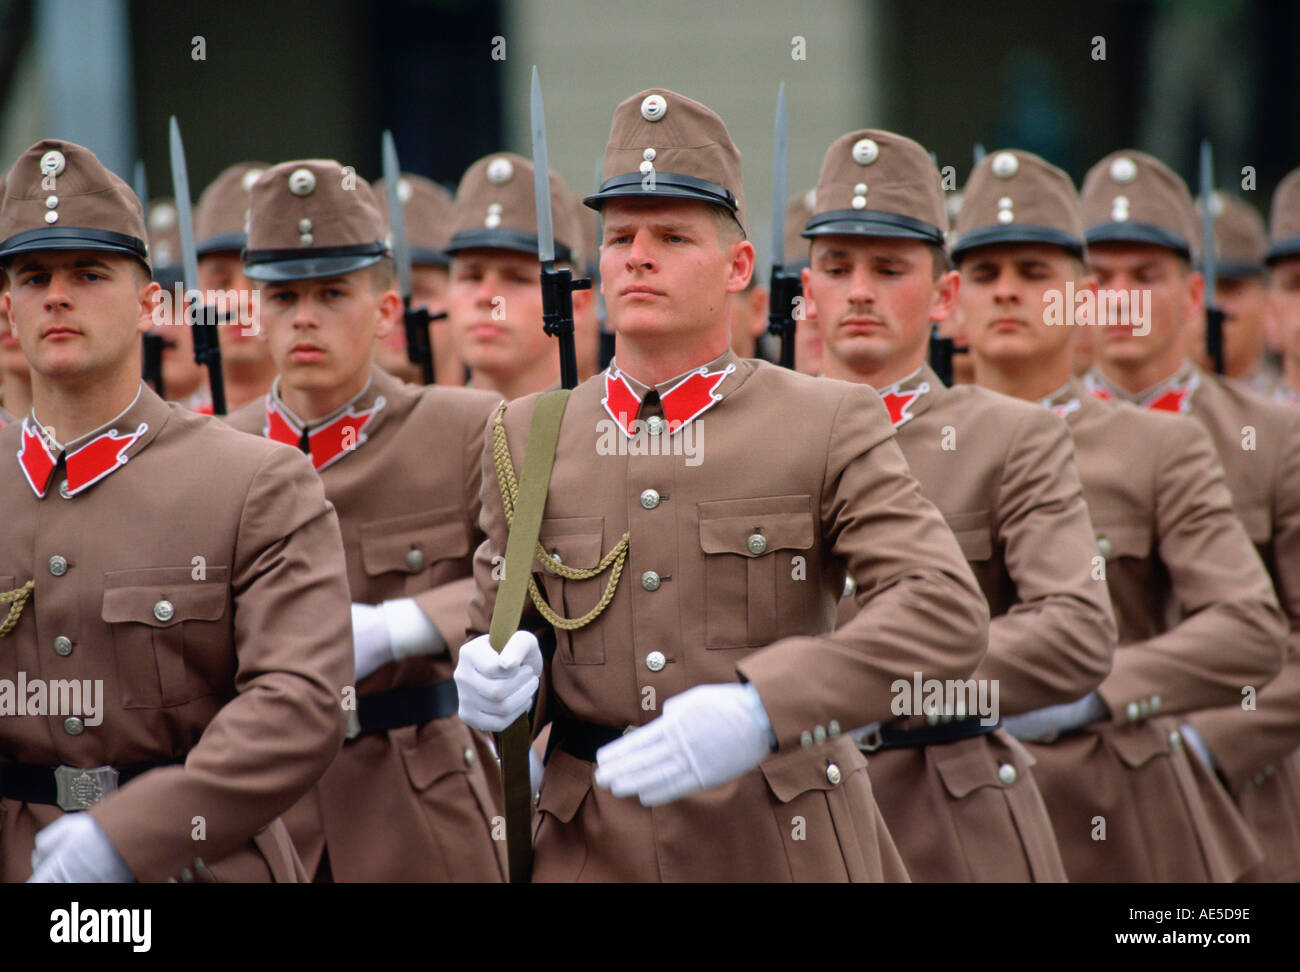 611bcf2cf Hungarian Soldiers Stock Photos & Hungarian Soldiers Stock Images ...